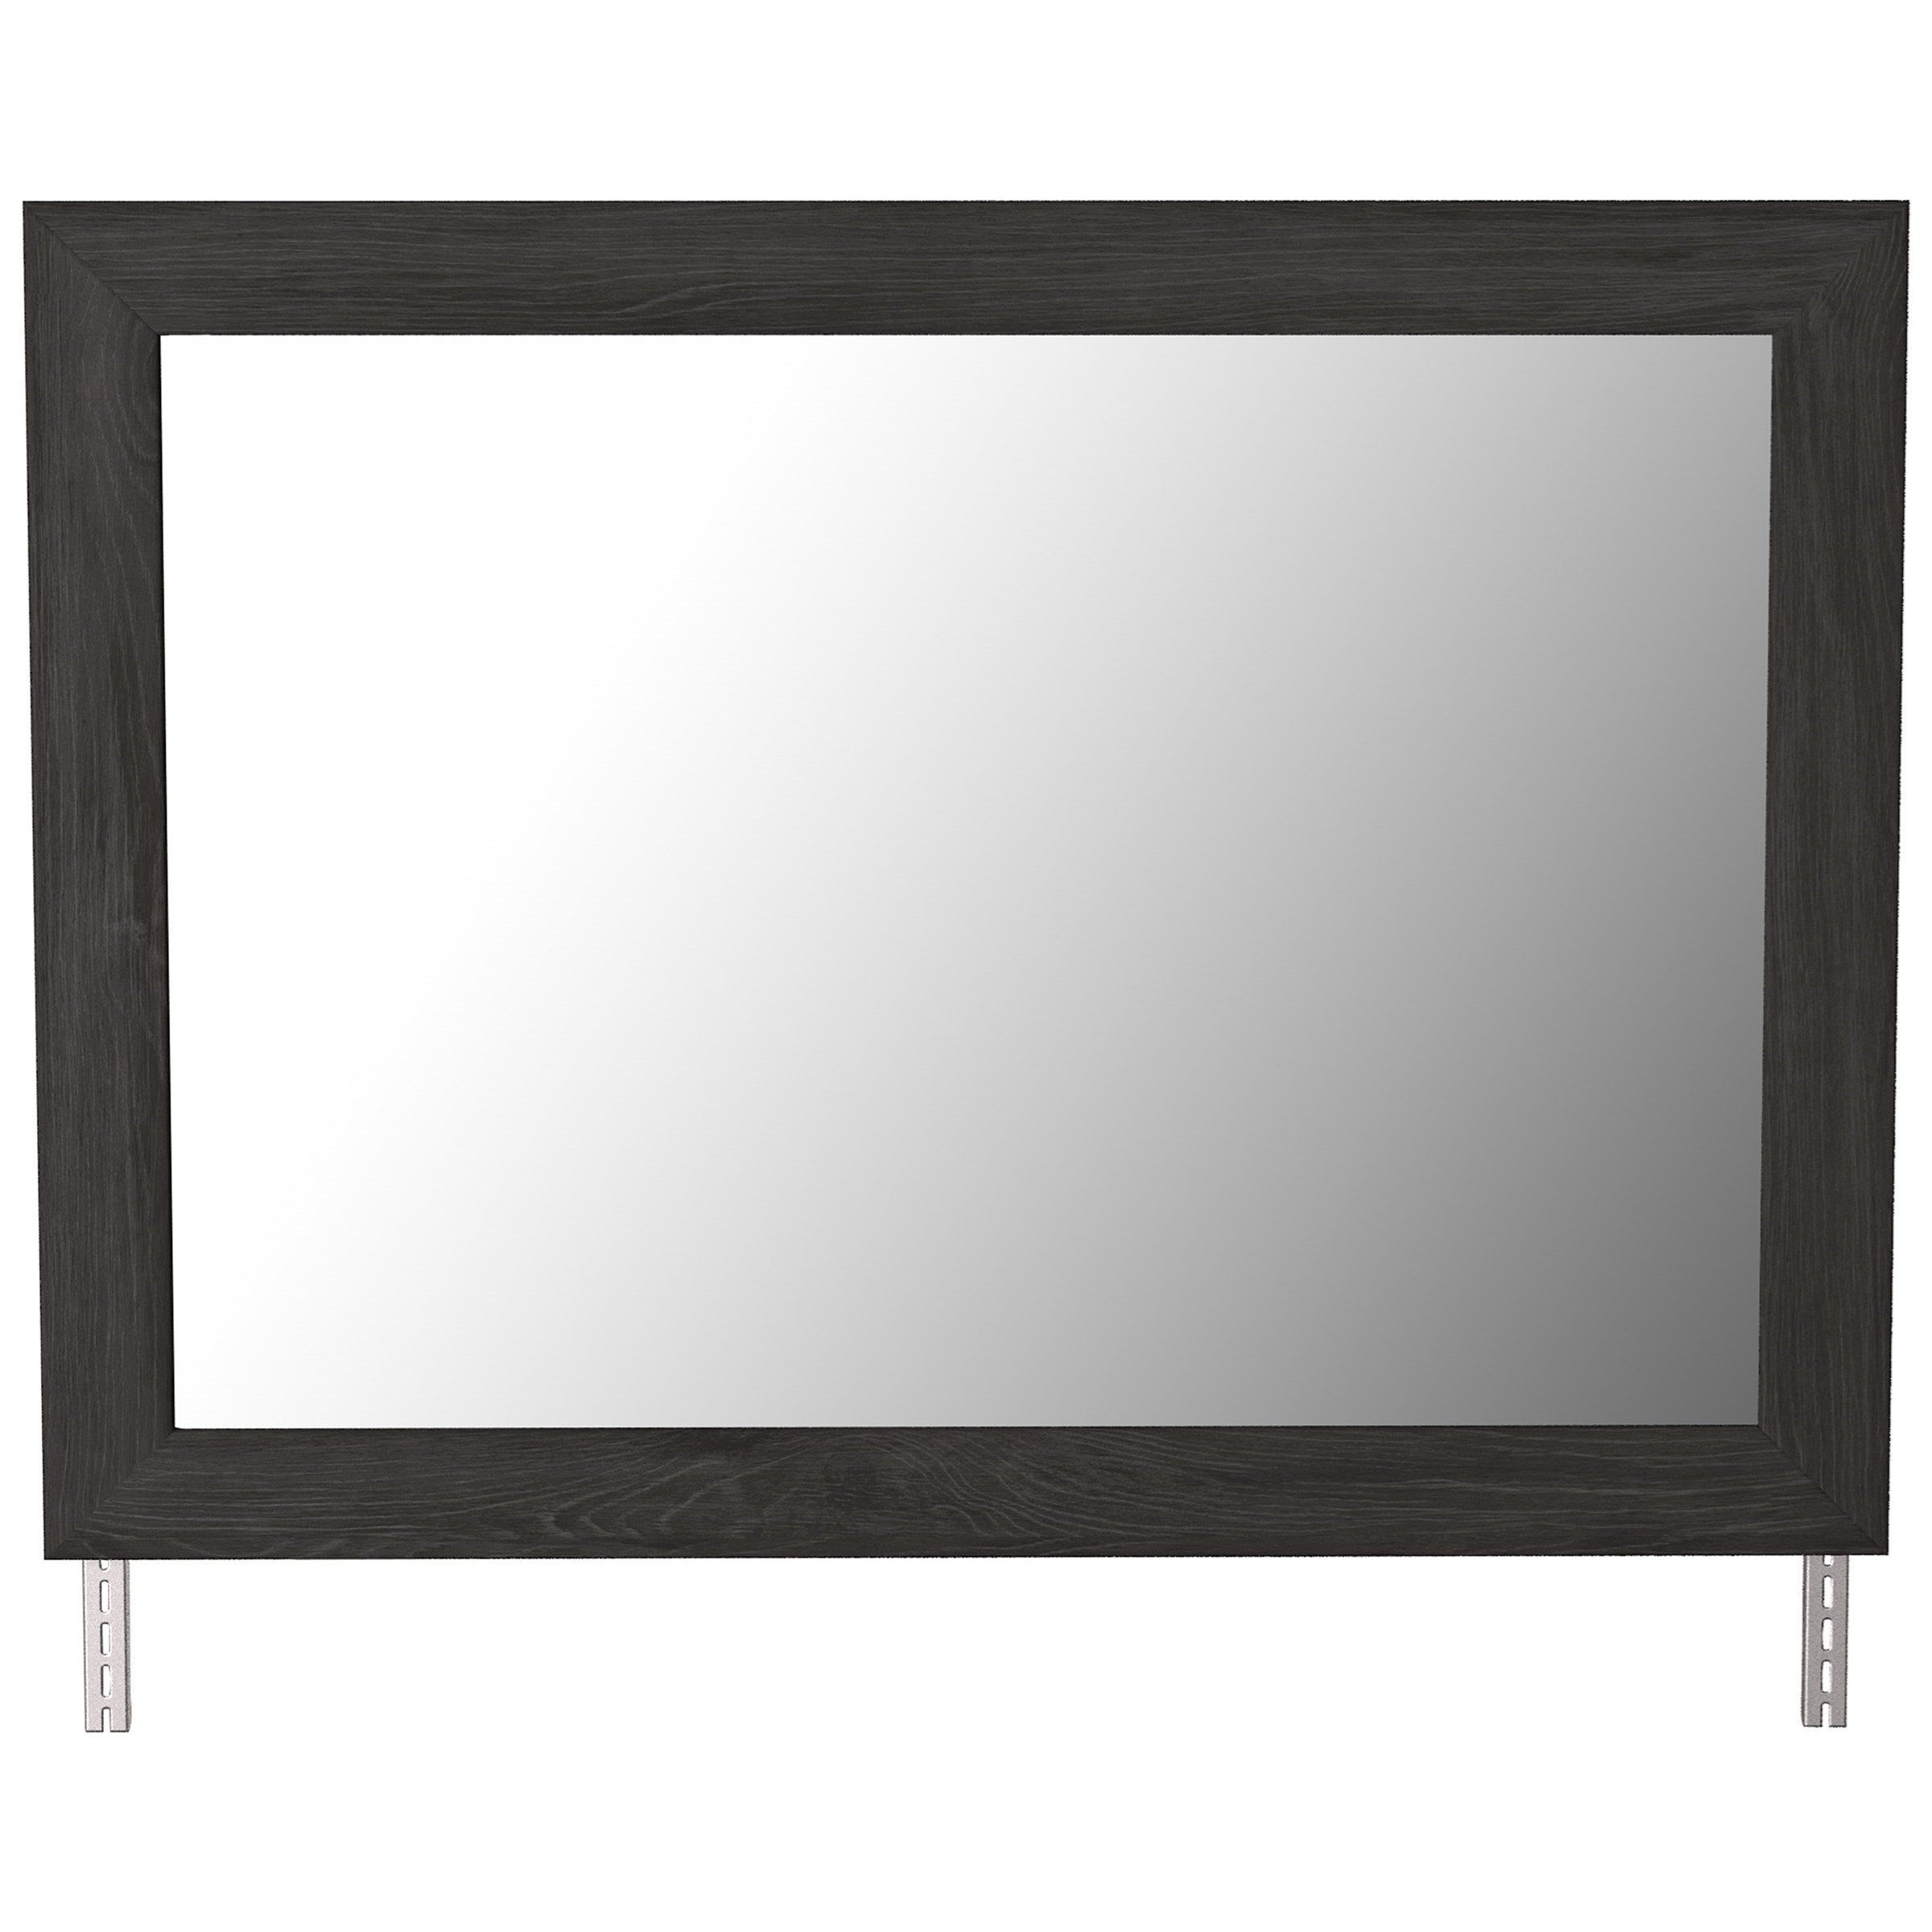 Belachime Bedroom Mirror by Signature Design by Ashley at Gill Brothers Furniture